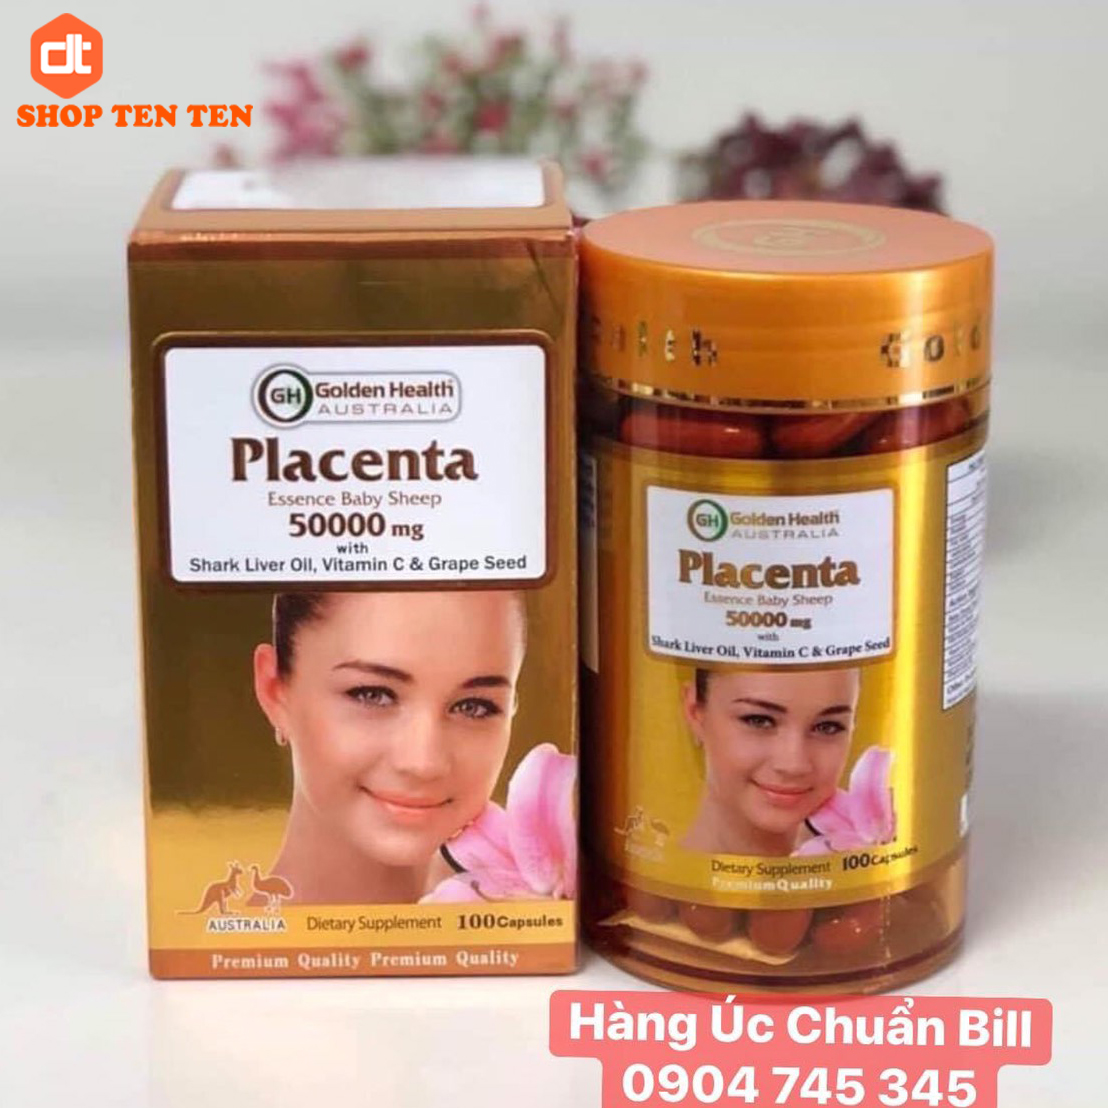 Nhau Thai Cừu Golden Health Placenta 50000mg Úc